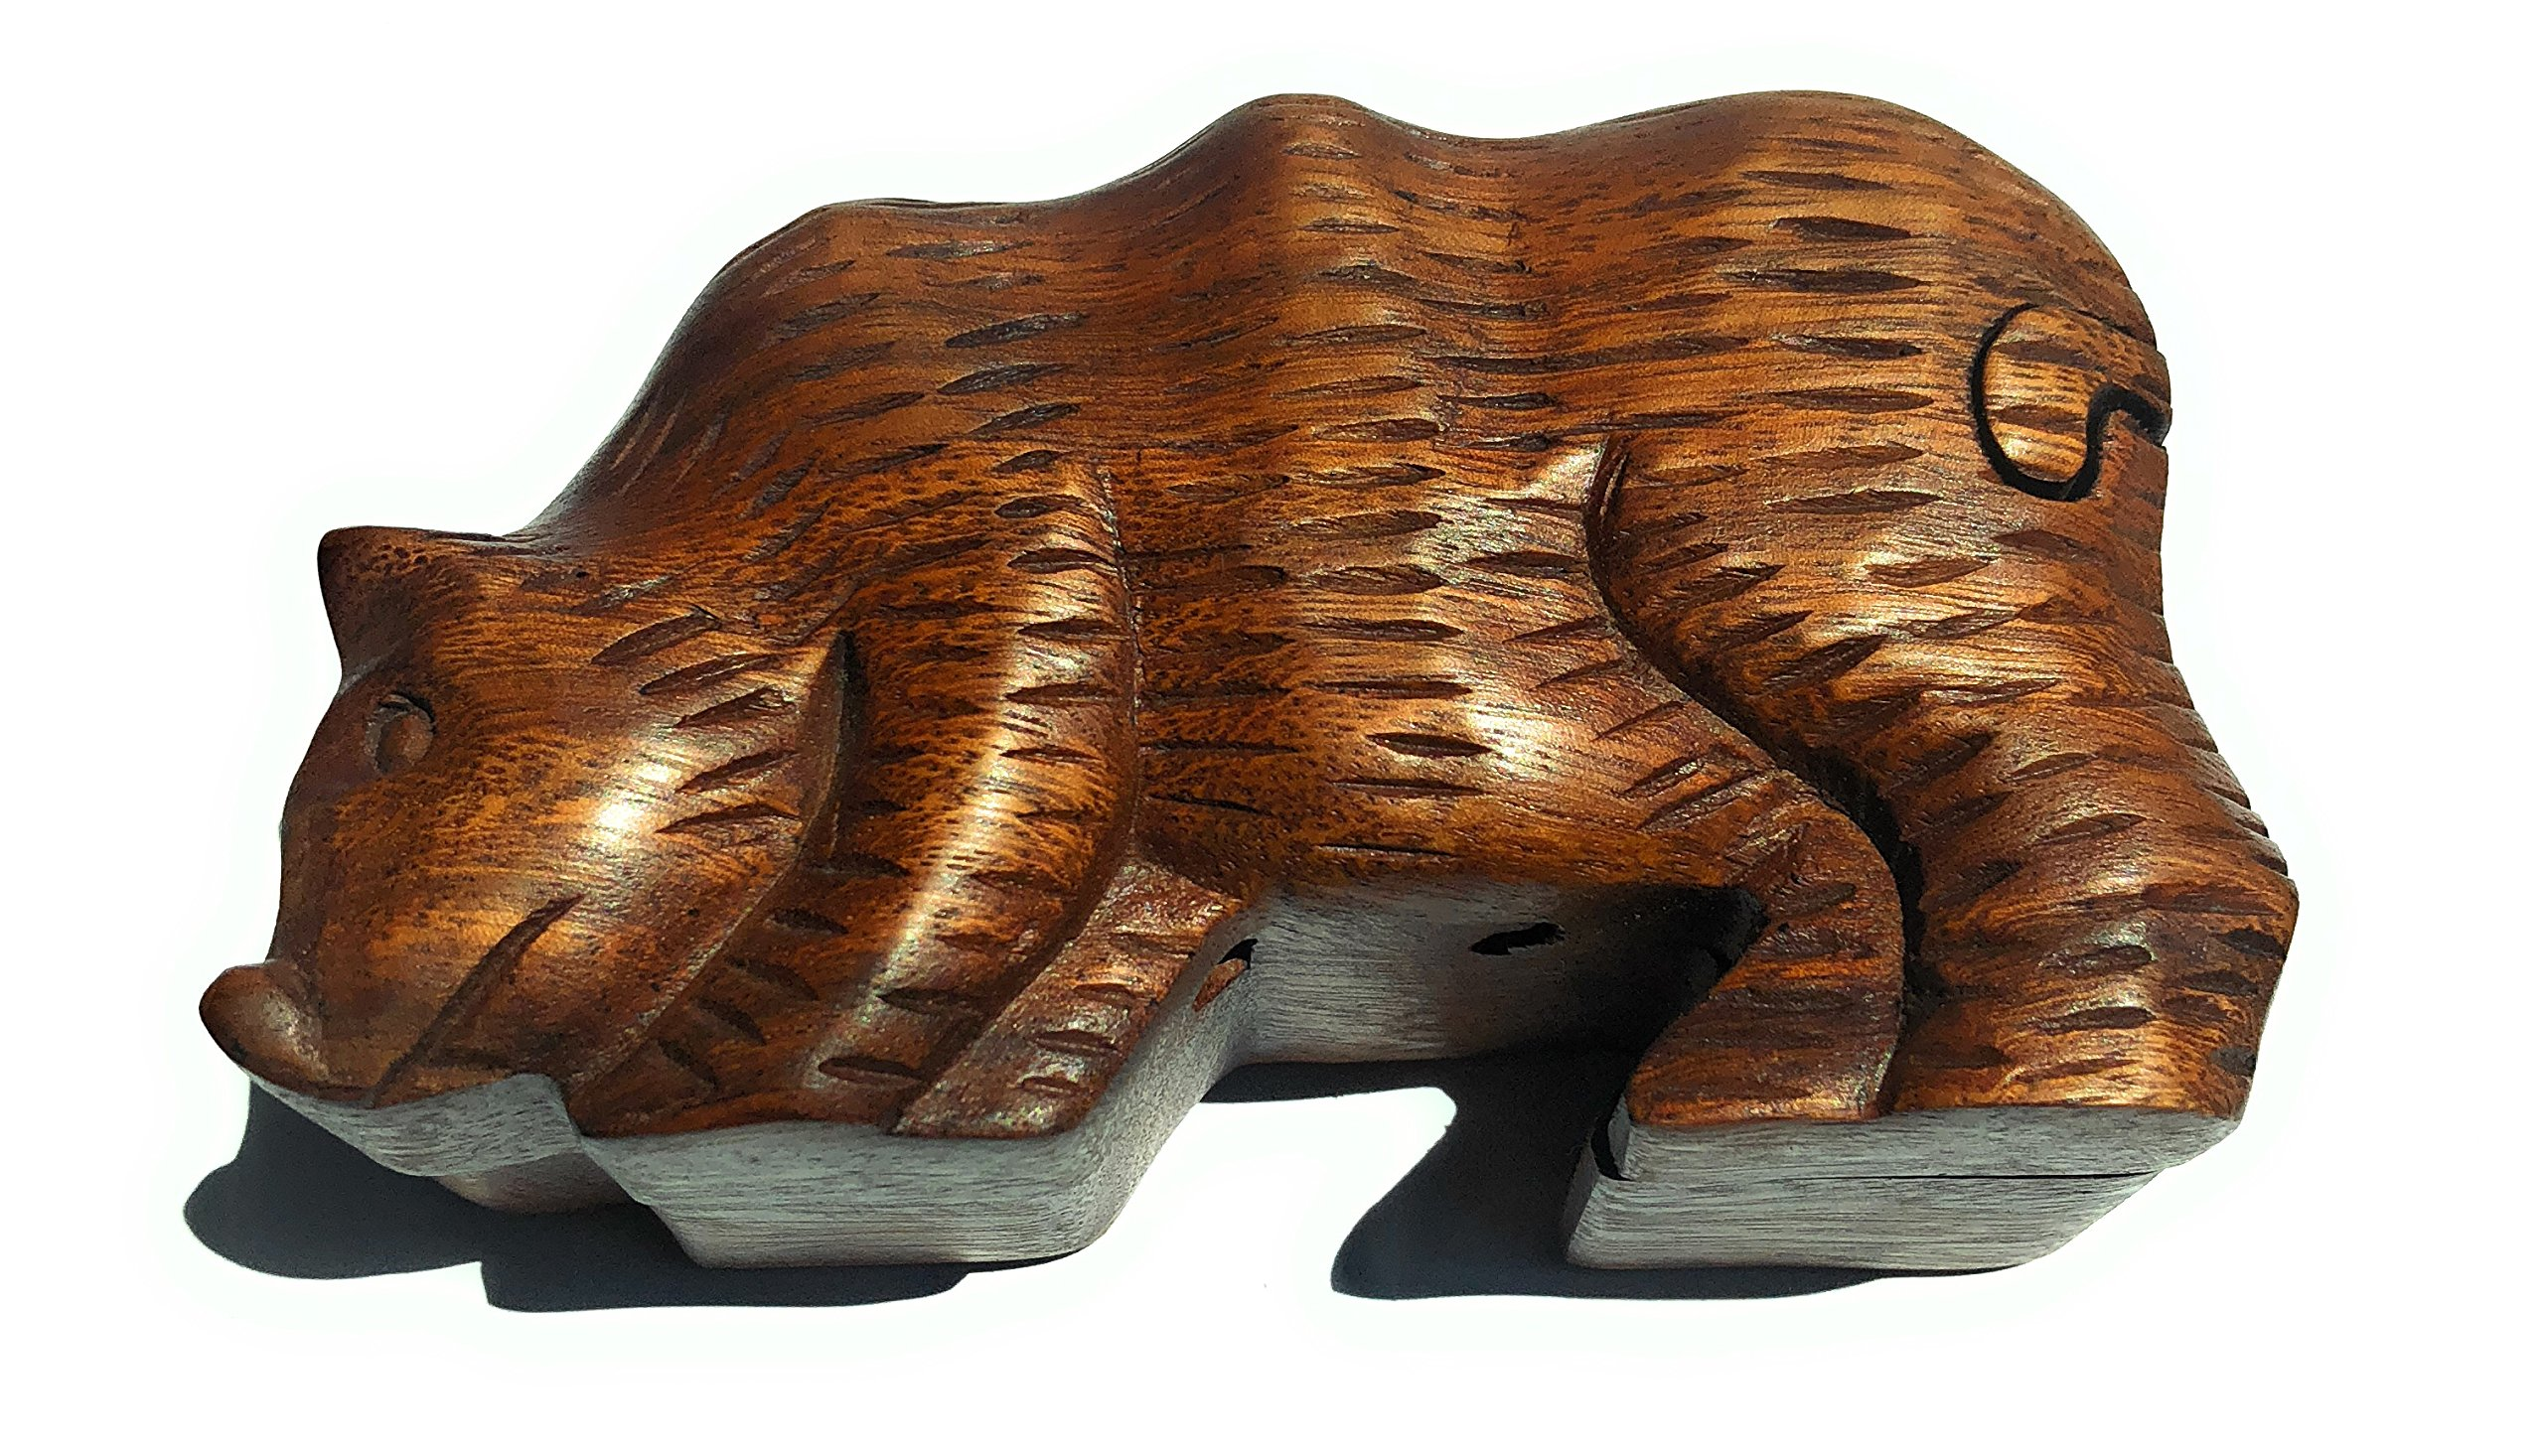 WOOD PUZZLE BOX BEAR TRINKET JEWELRY SECRET COMPARTMENT STASH GIFT CARVED WOOD ANIMAL